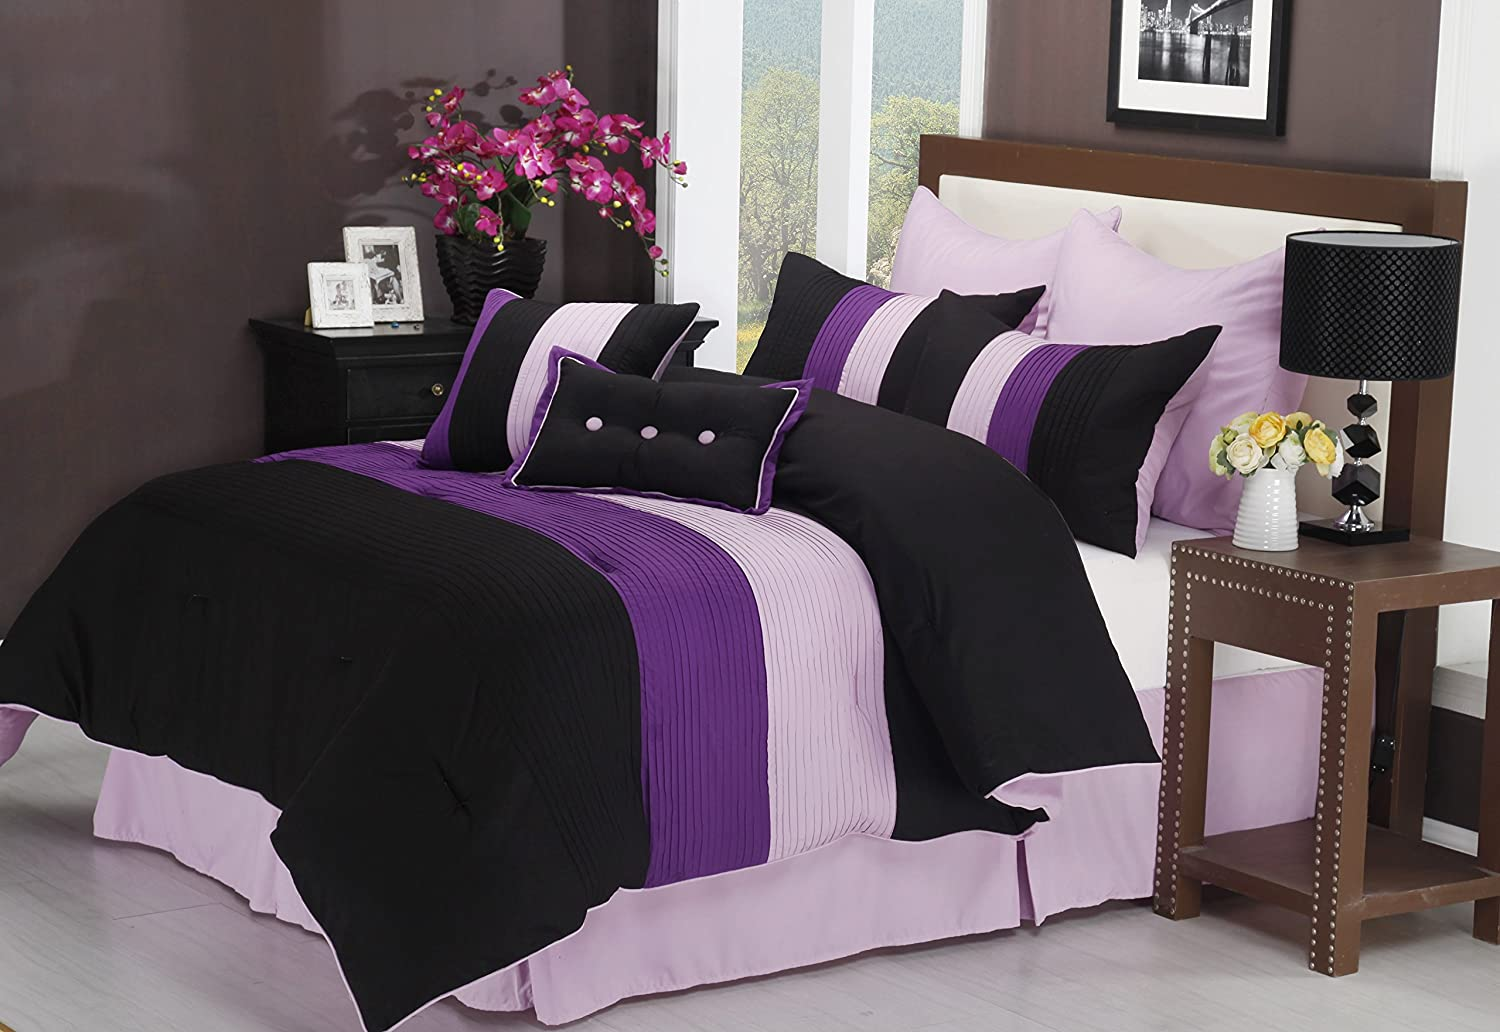 Purple And Black Bedding Sets Ease Bedding With Style